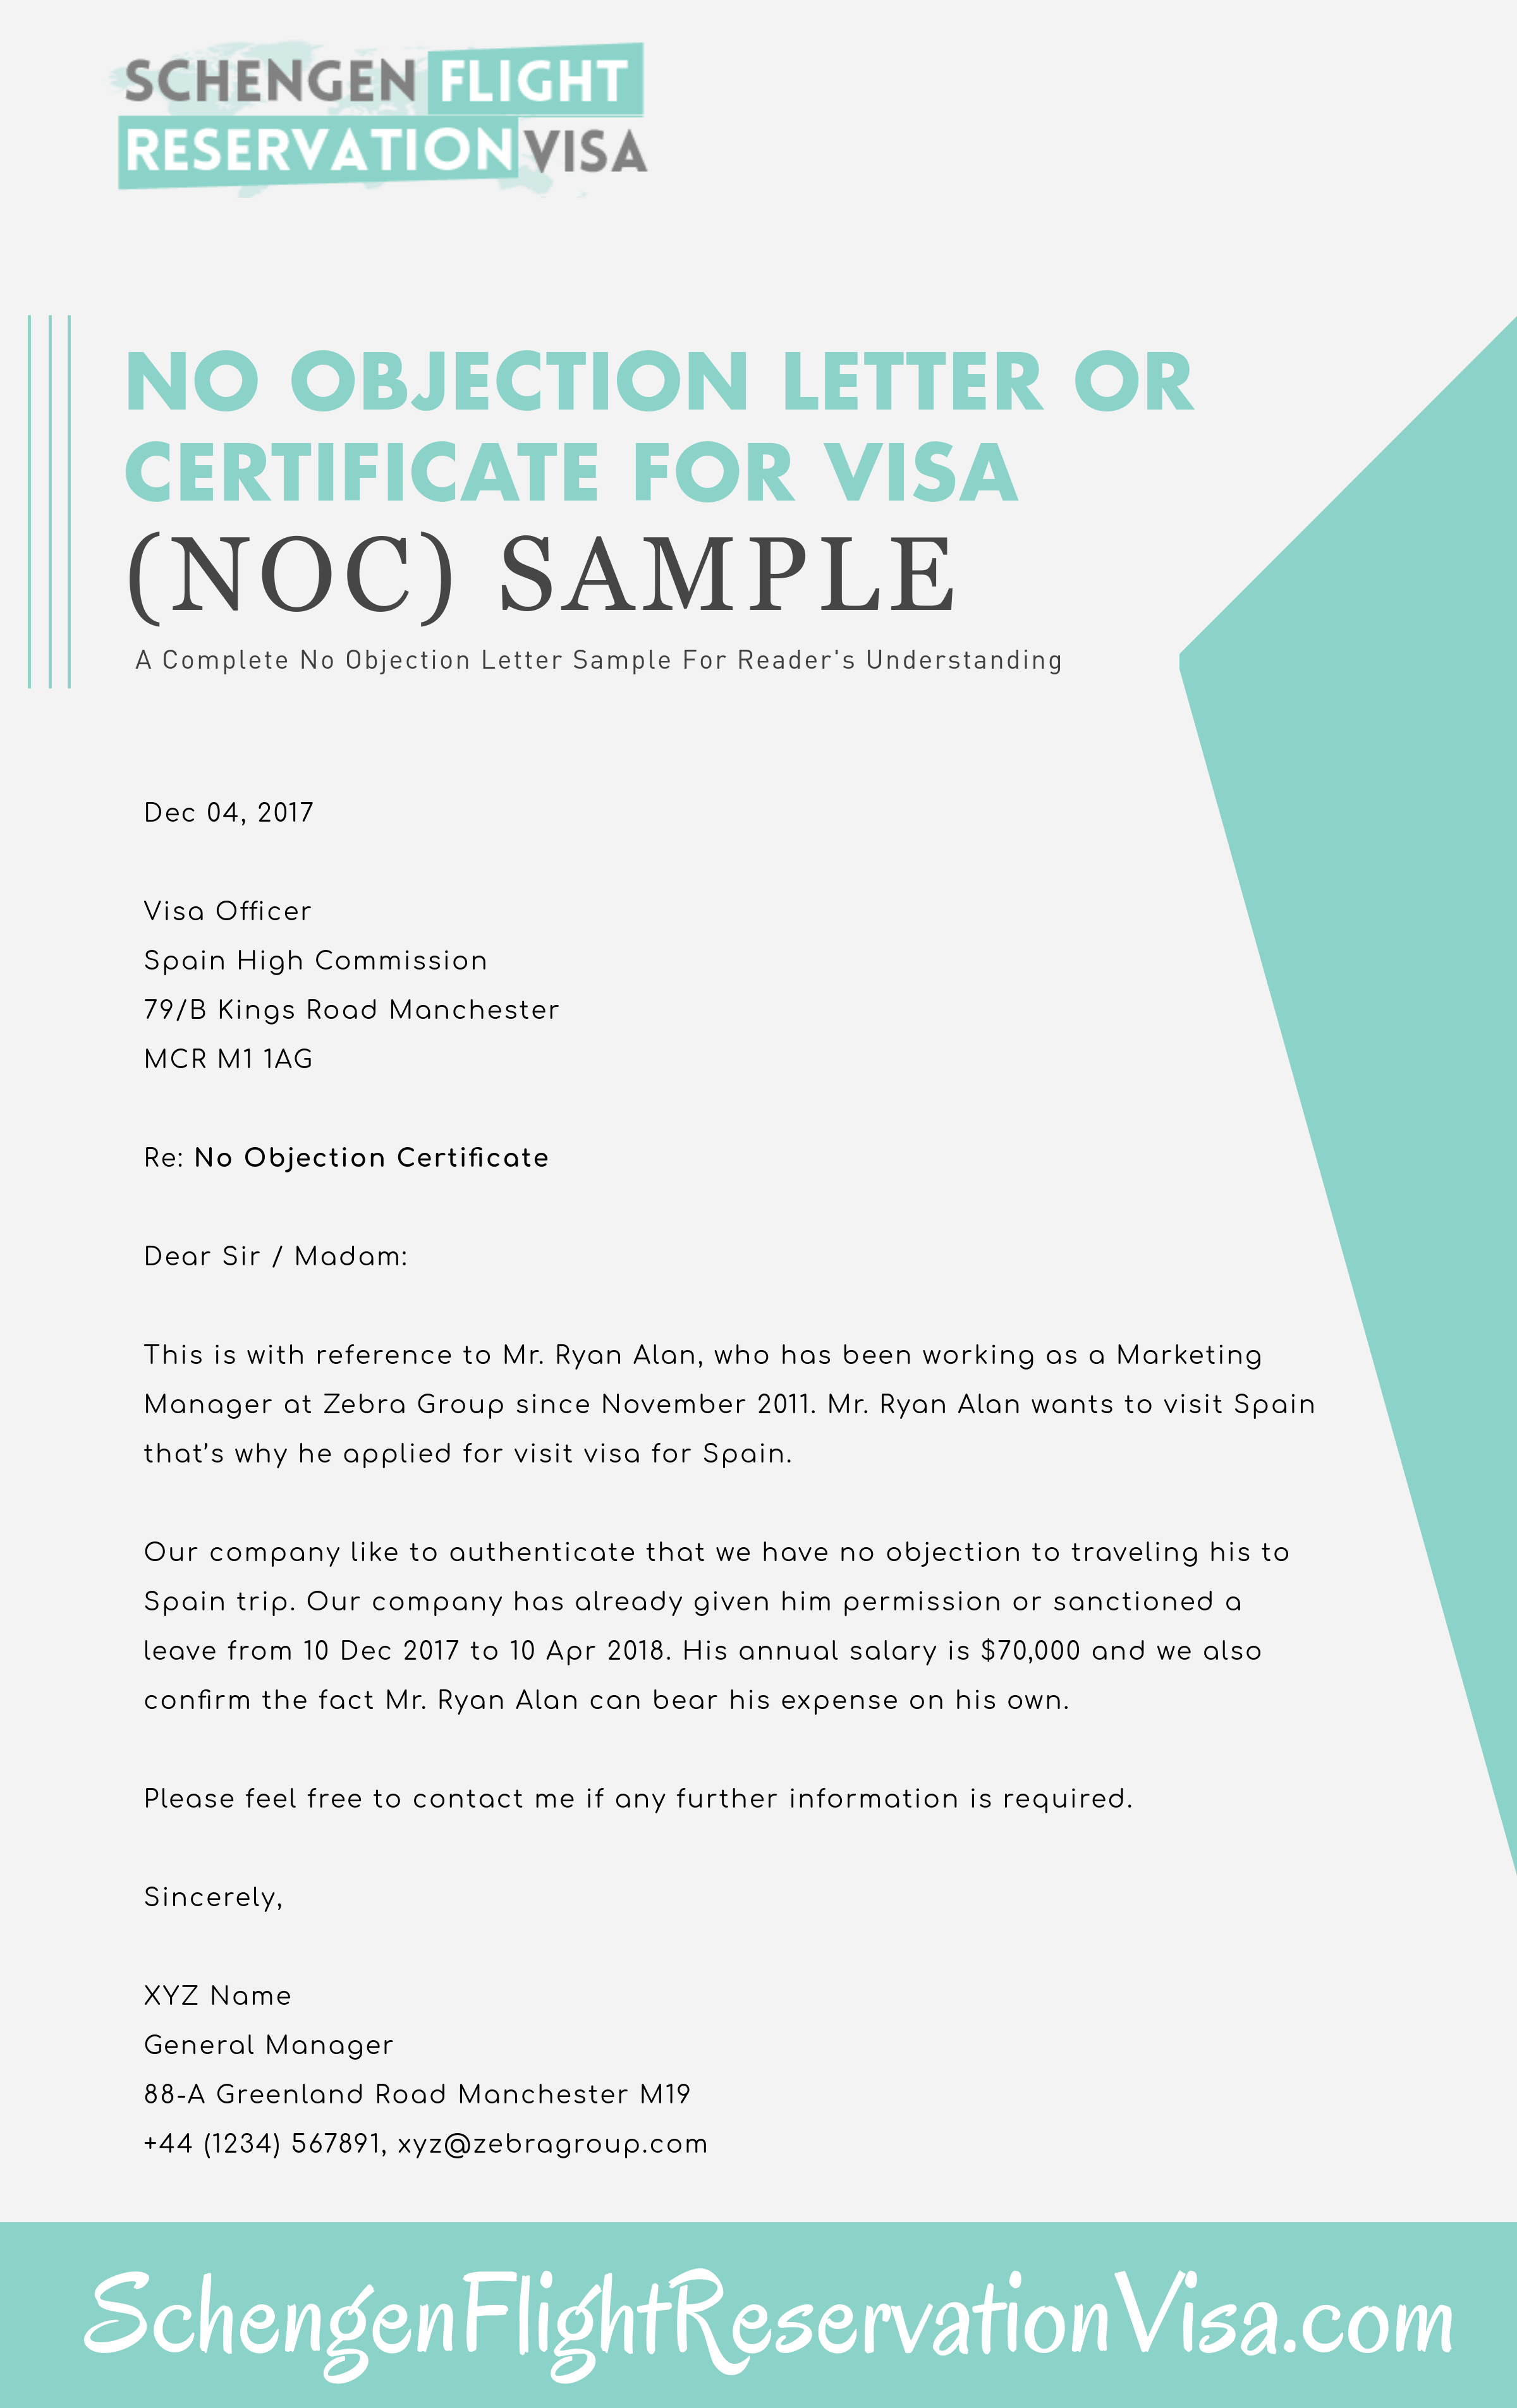 No Objection Letter OR Certificate Sample